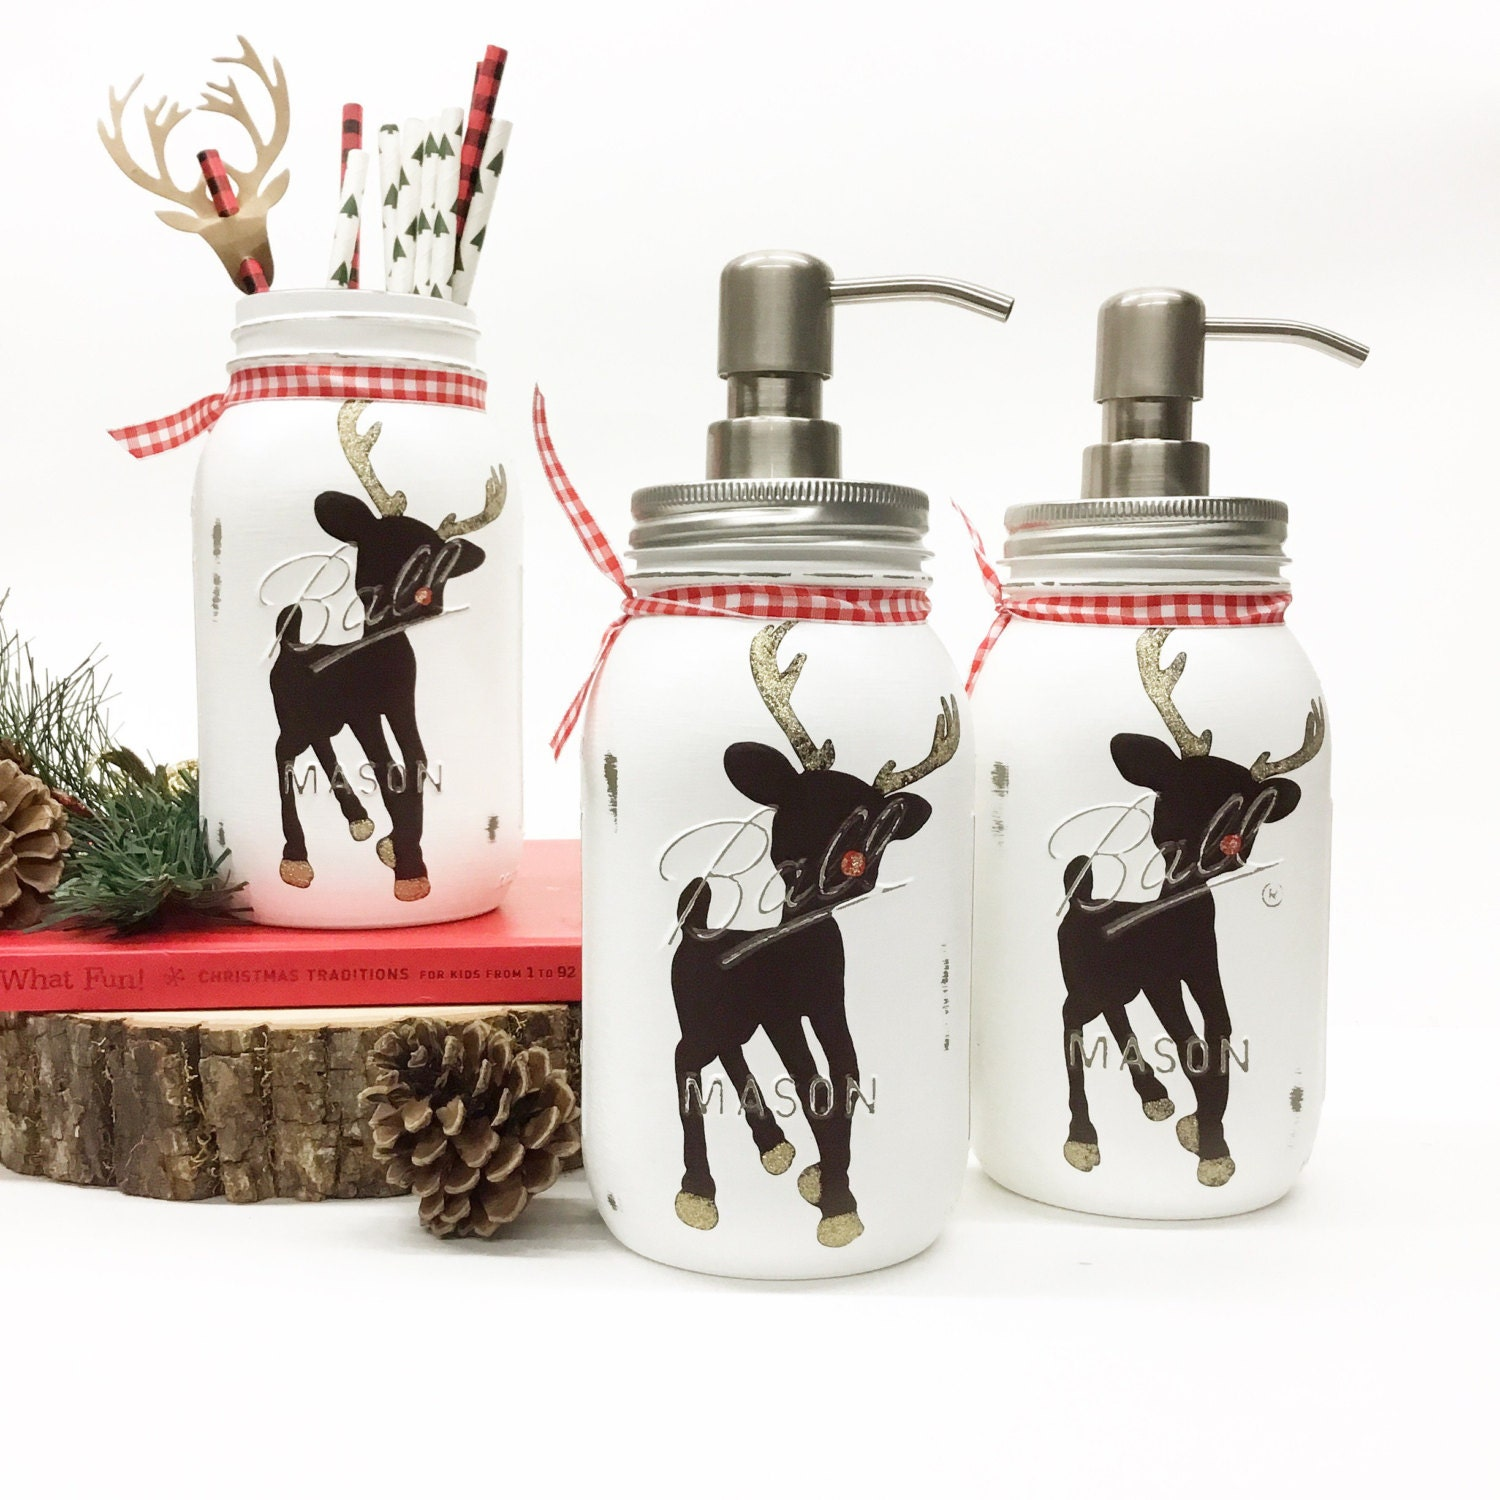 Mason Jar Christmas Decorations: Hand Painted Rudolph Mason Jar Christmas Decor Reindeer